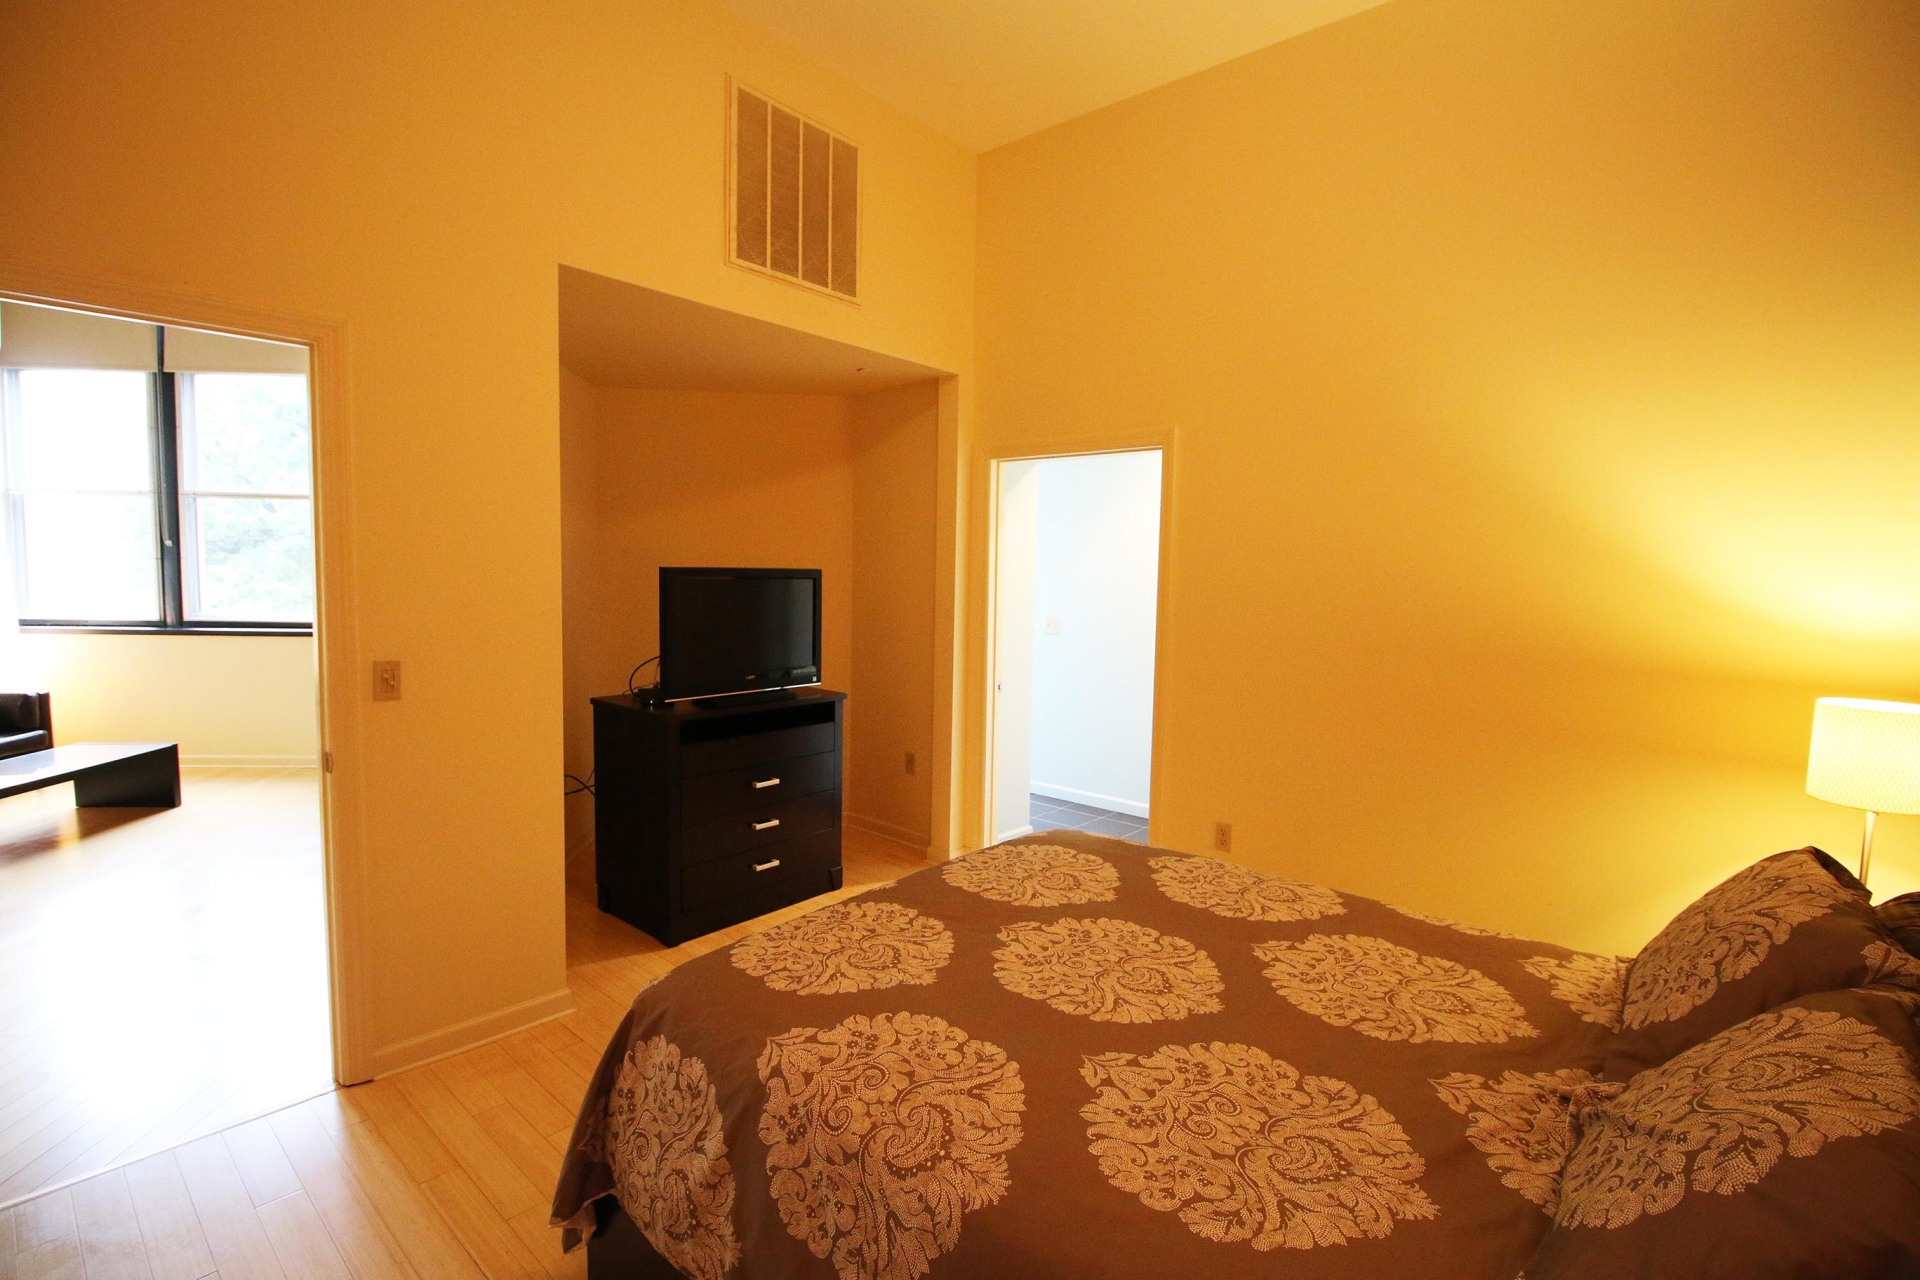 One bedroom furnished apartment for short term rent in Harrisburg PA